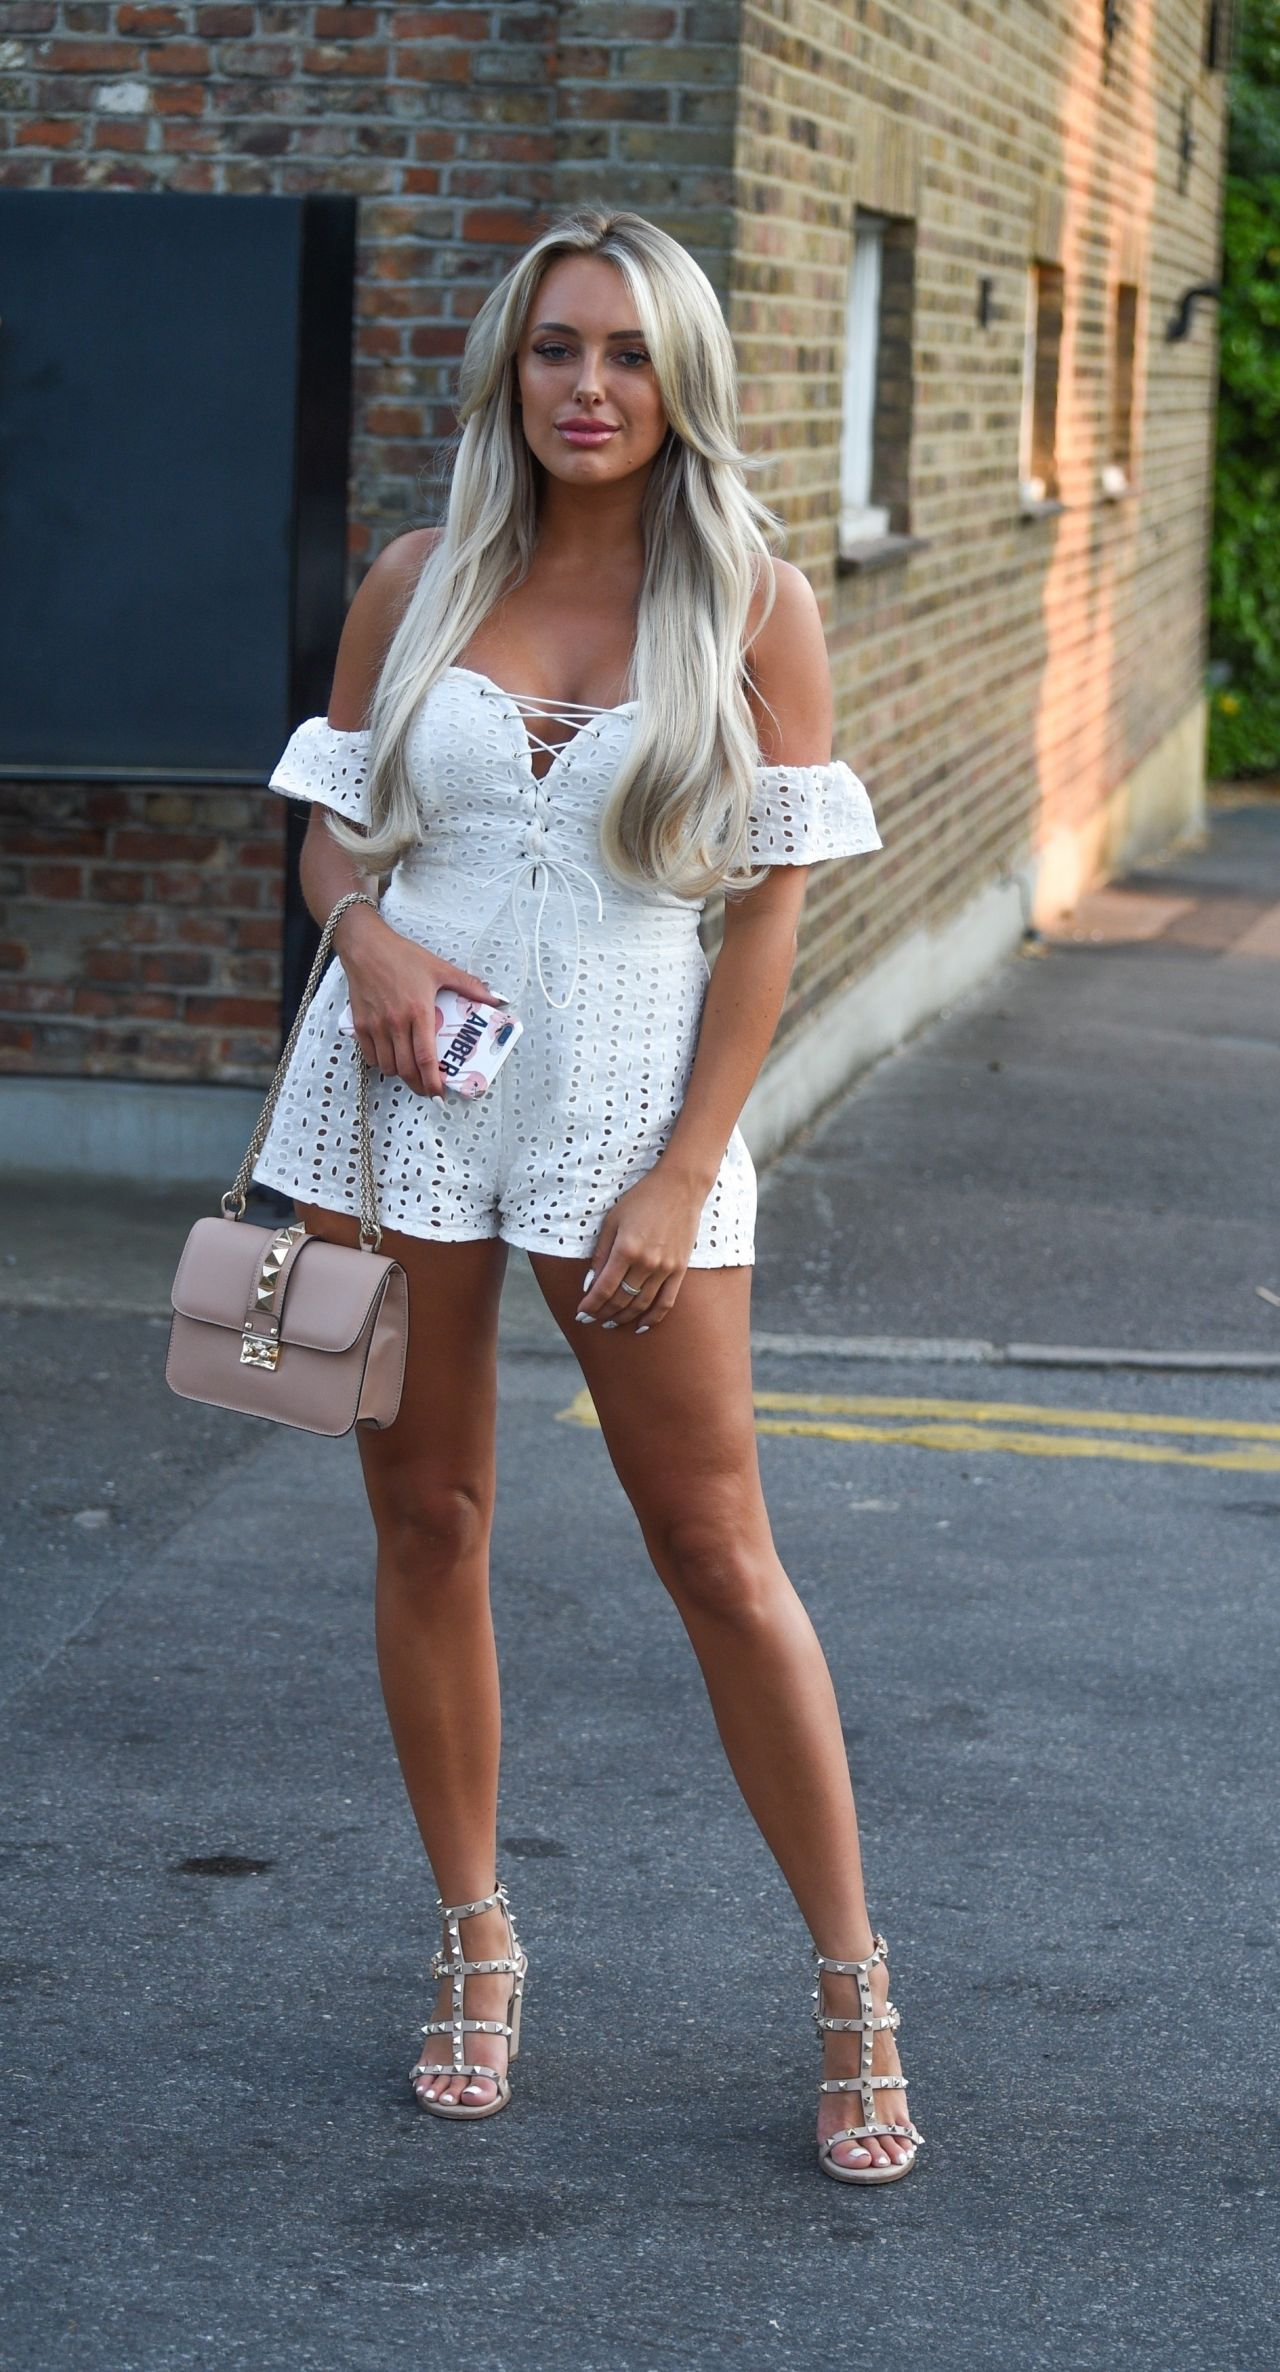 Amber Turner Out In Essex 07 07 2018